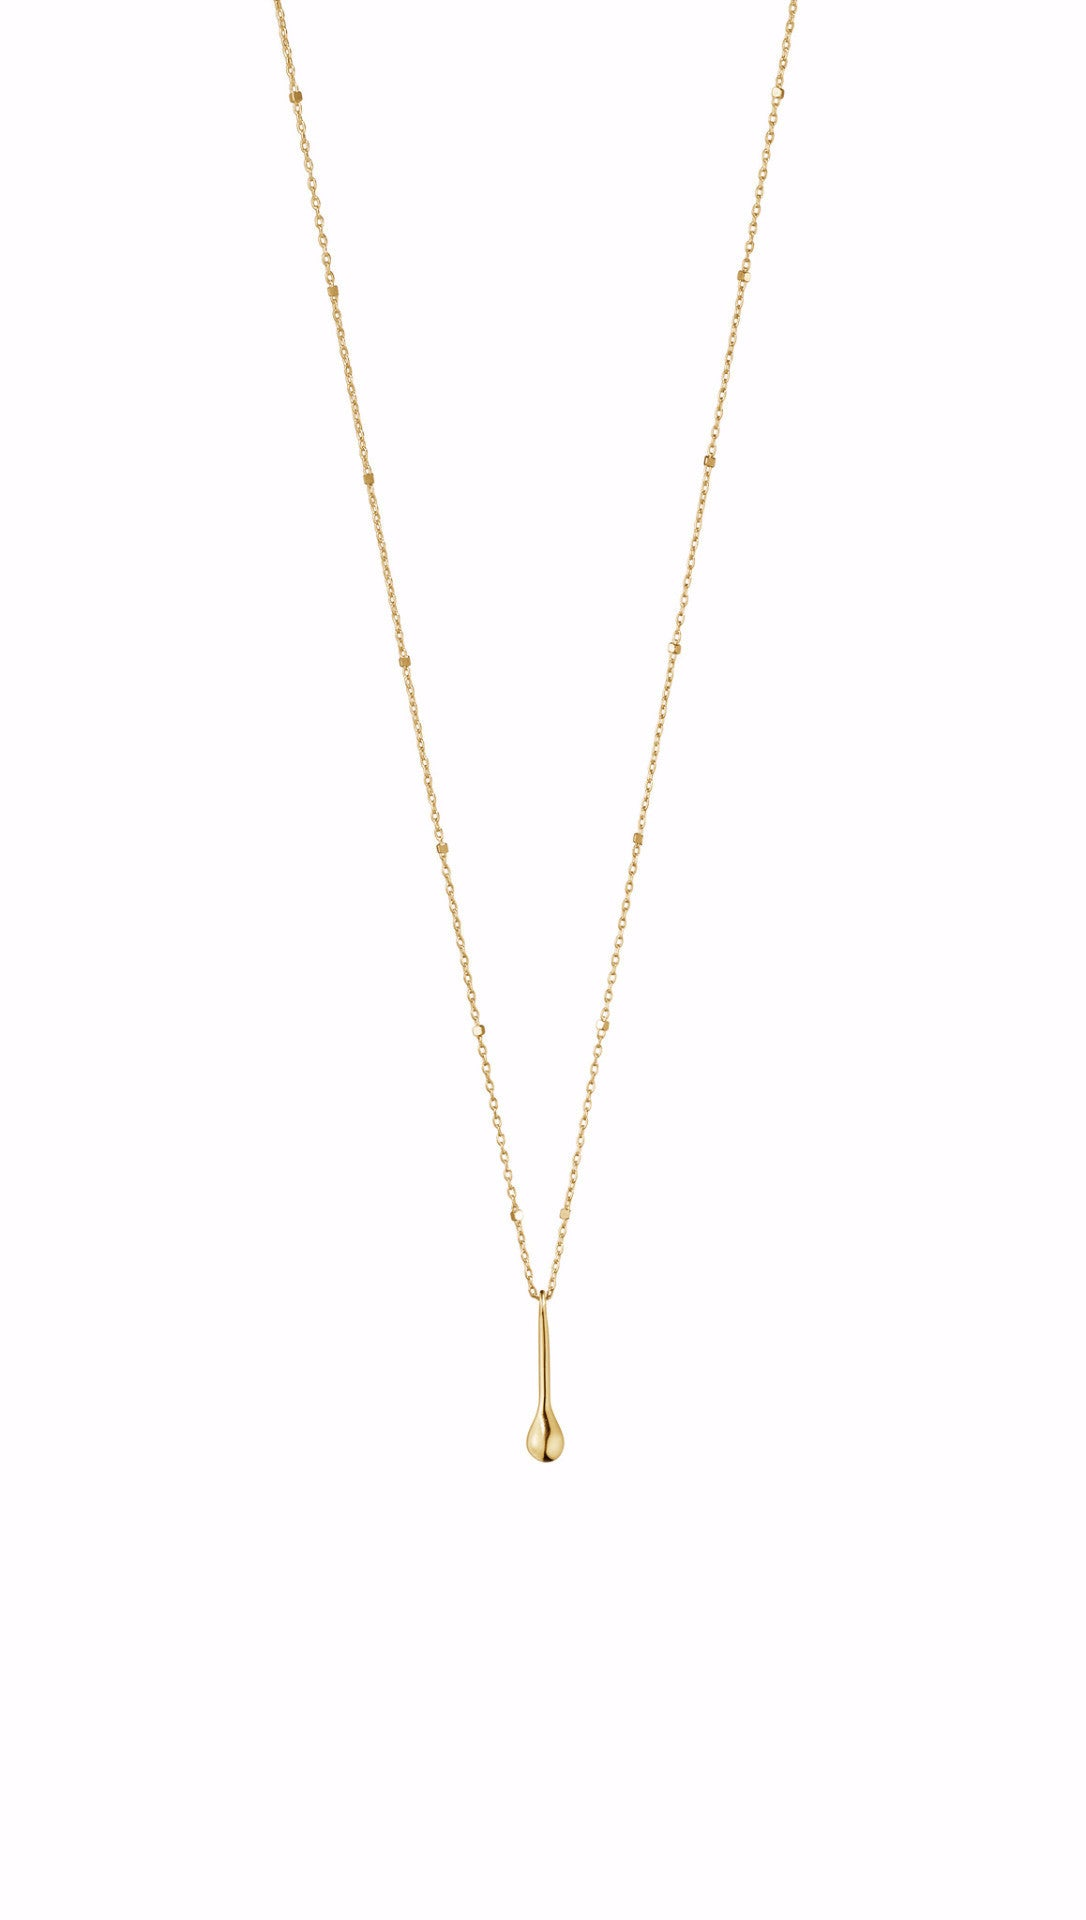 MOVING TEARDROP · NECKLACE · 18KT. GOLD